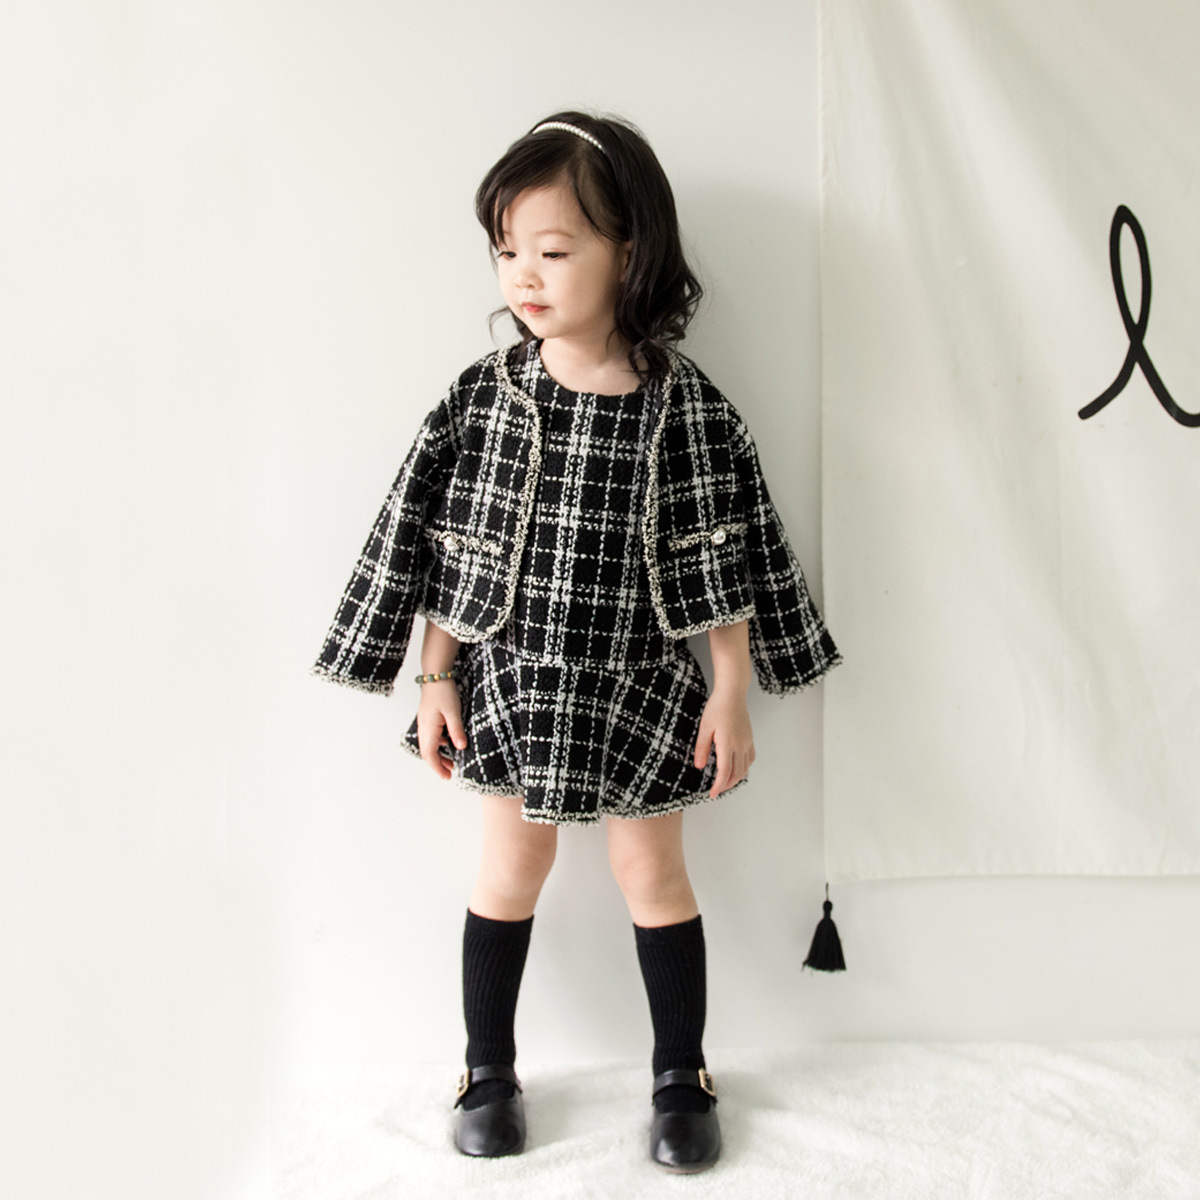 Anlencool 2018 Fashion Korean children autumn girl suit ladies wind suit for children checkered skirt Baby girl clothing set children s suit 2018 fashion england wind children s clothing autumn and winter boy plaid suit performance clothing